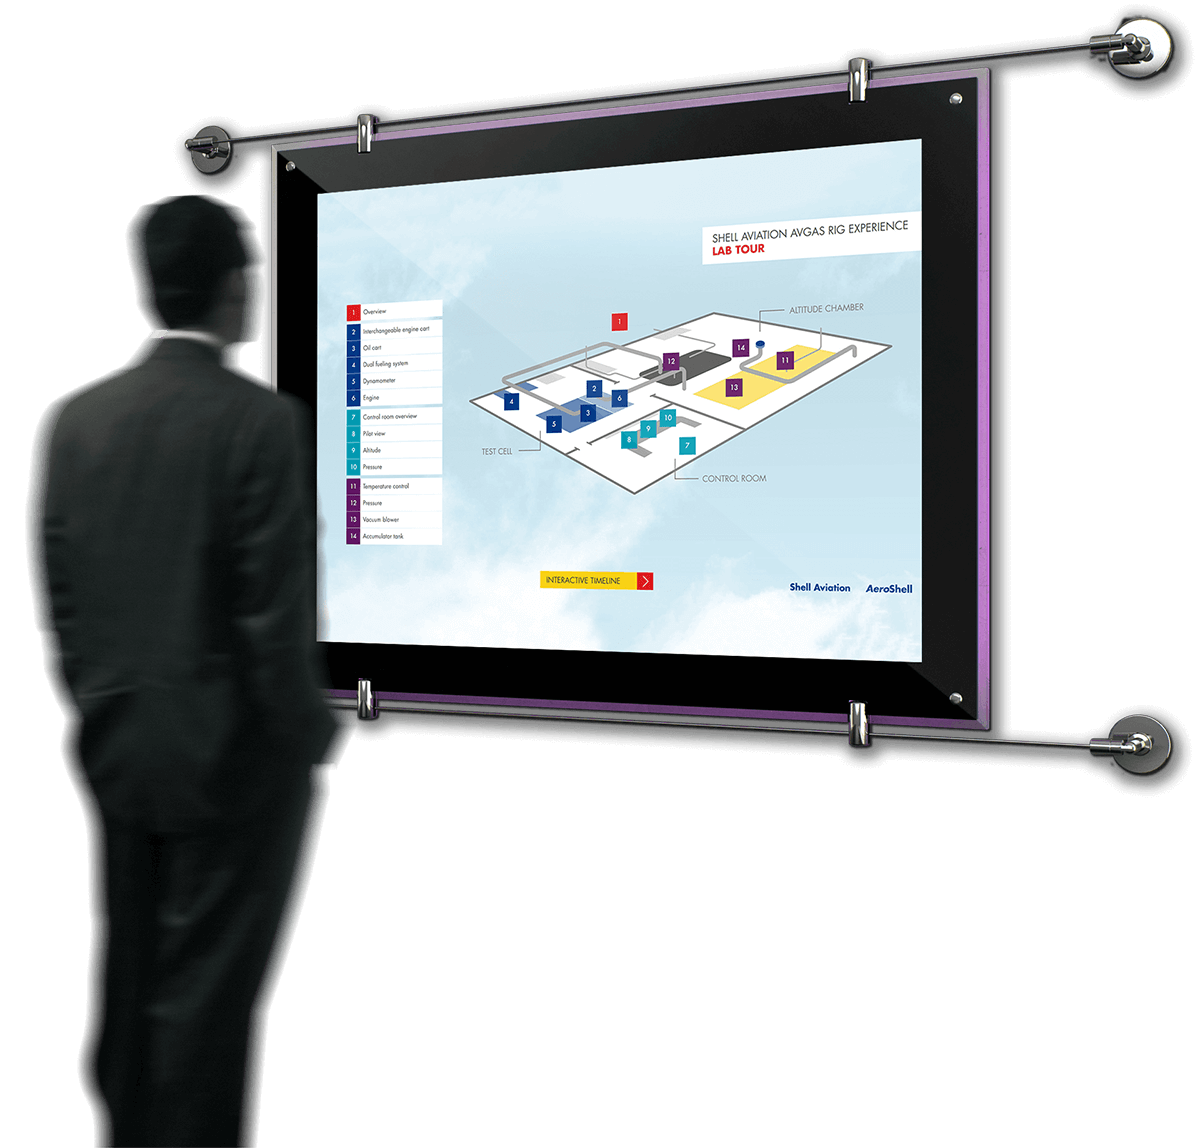 Interactive touch screen design for Avgas